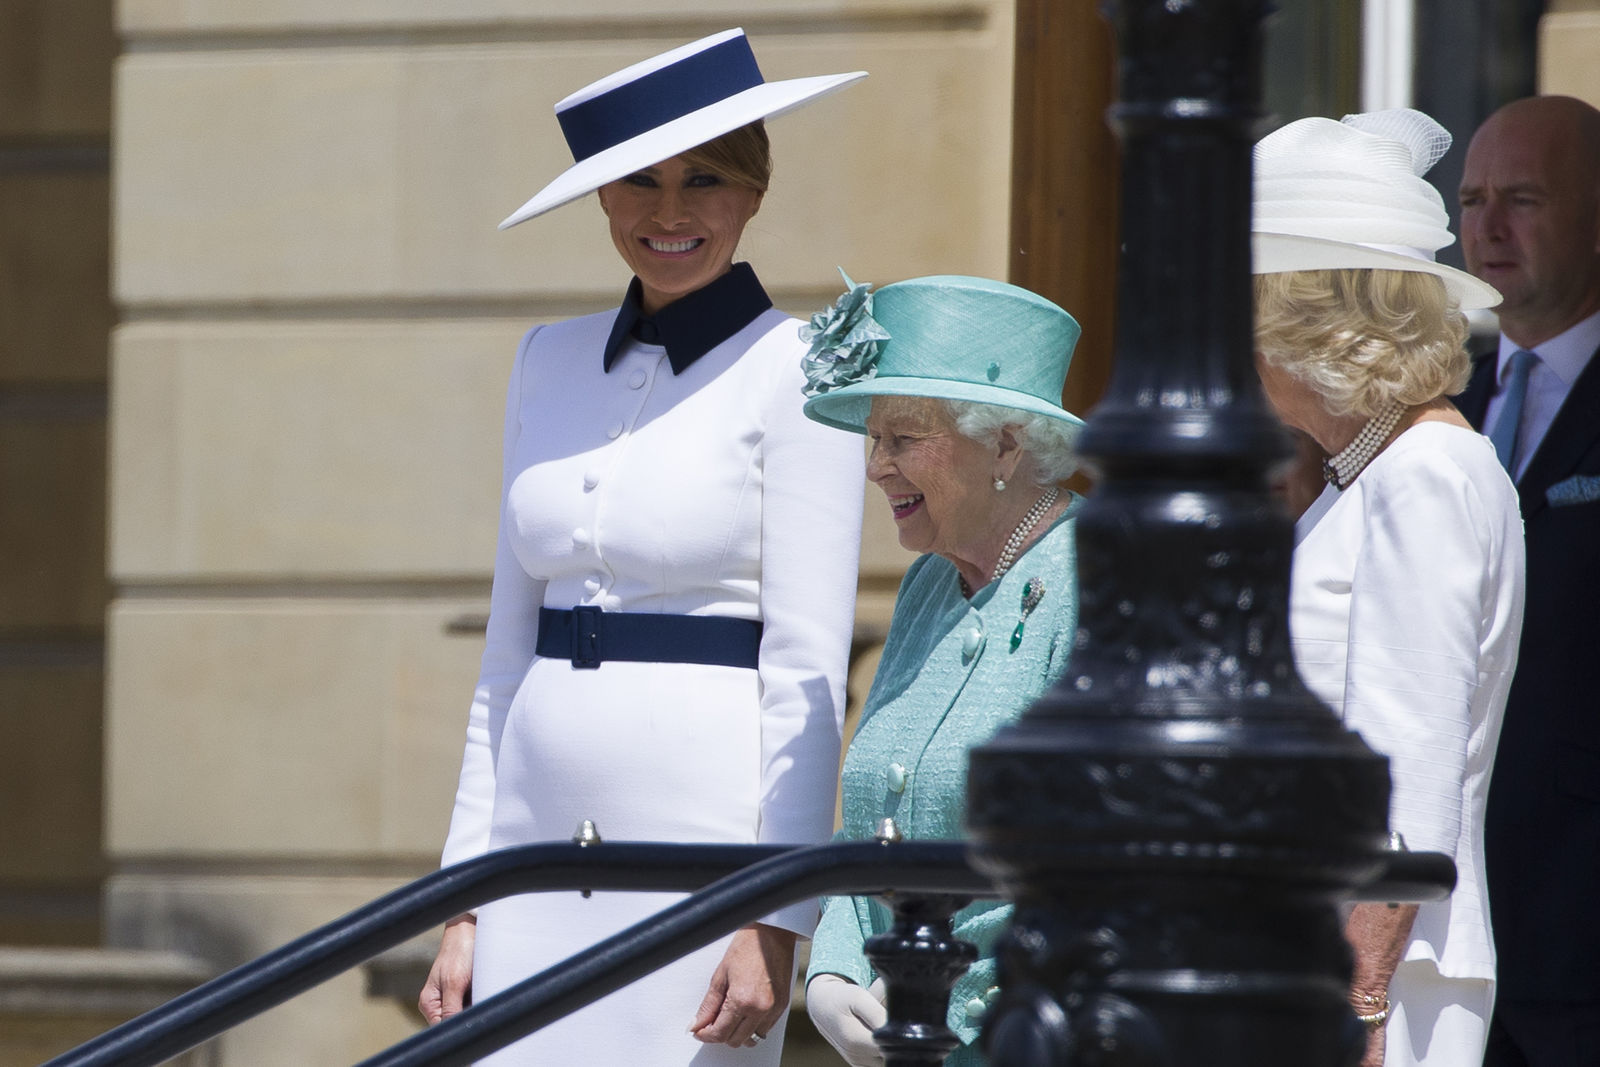 First lady Melania Trump, left, stands with Queen Elizabeth II, and Camilla, Duchess of Cornwall at Buckingham Palace, Monday, June 3, 2019, in London. (AP Photo/Alex Brandon)